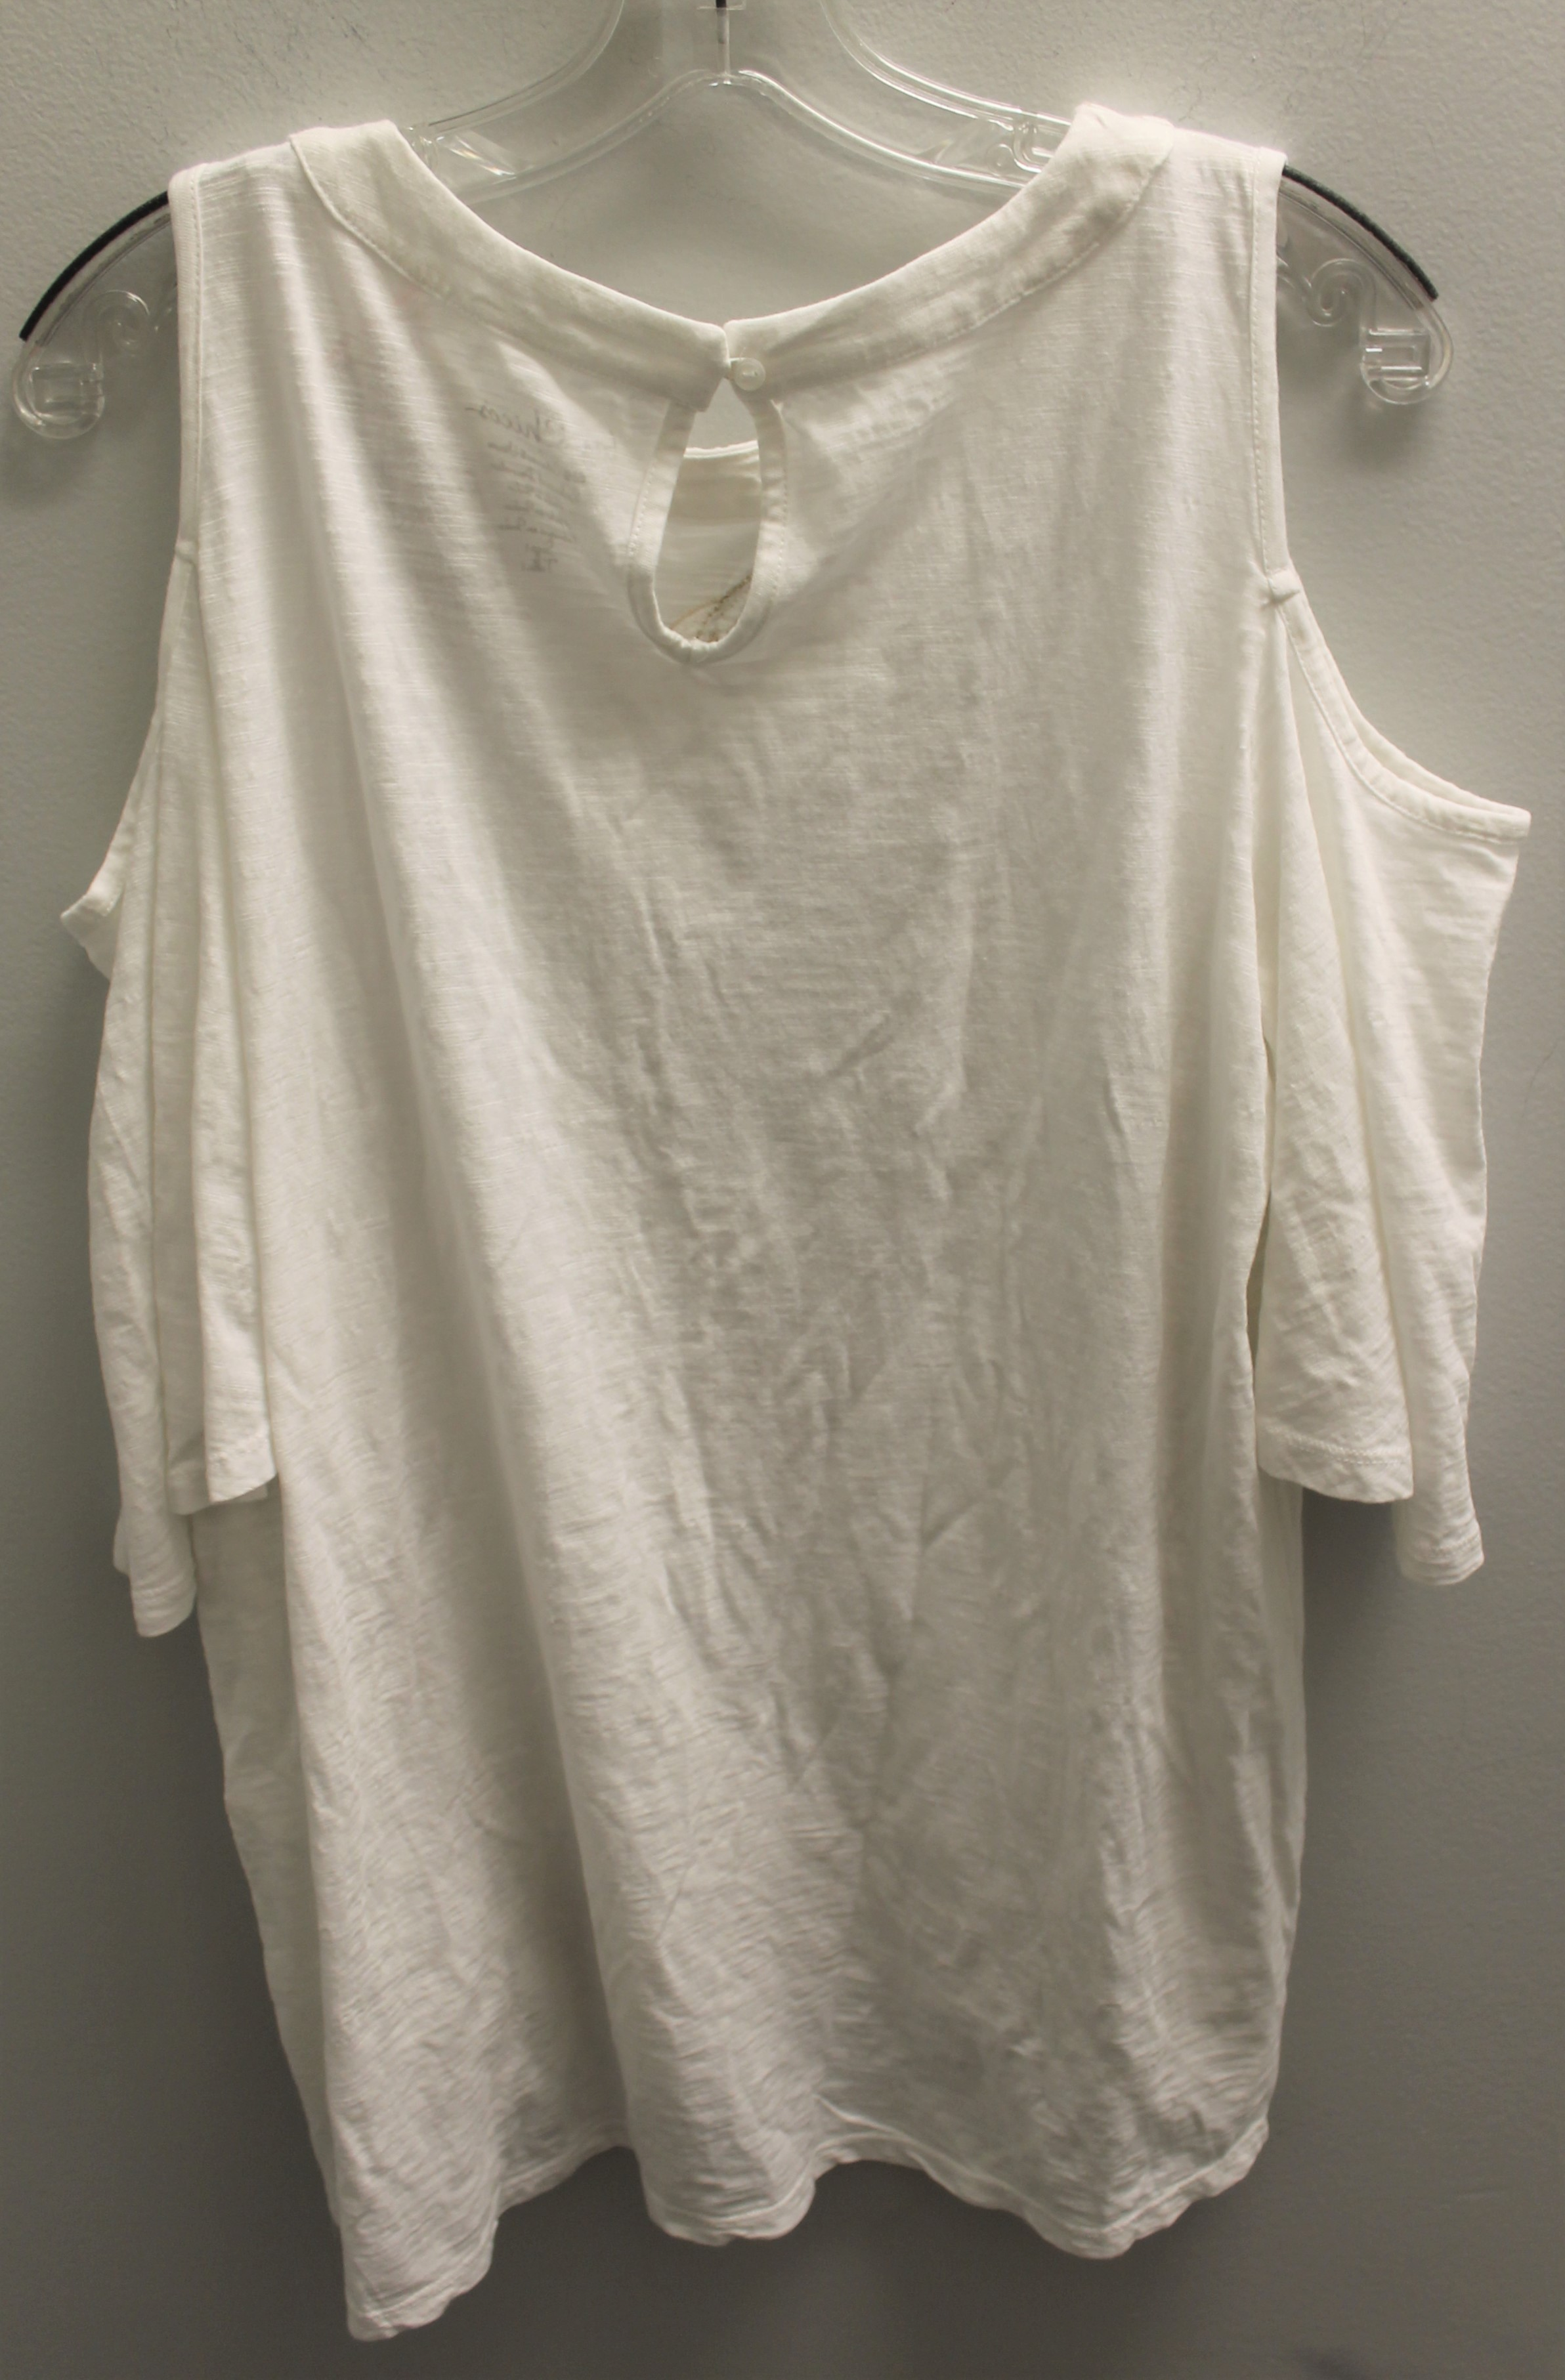 CHICOS-Size-M-white-and-gold-Cotton-Blend-Embroidered-Short-Sleeve-Top_89490D.jpg